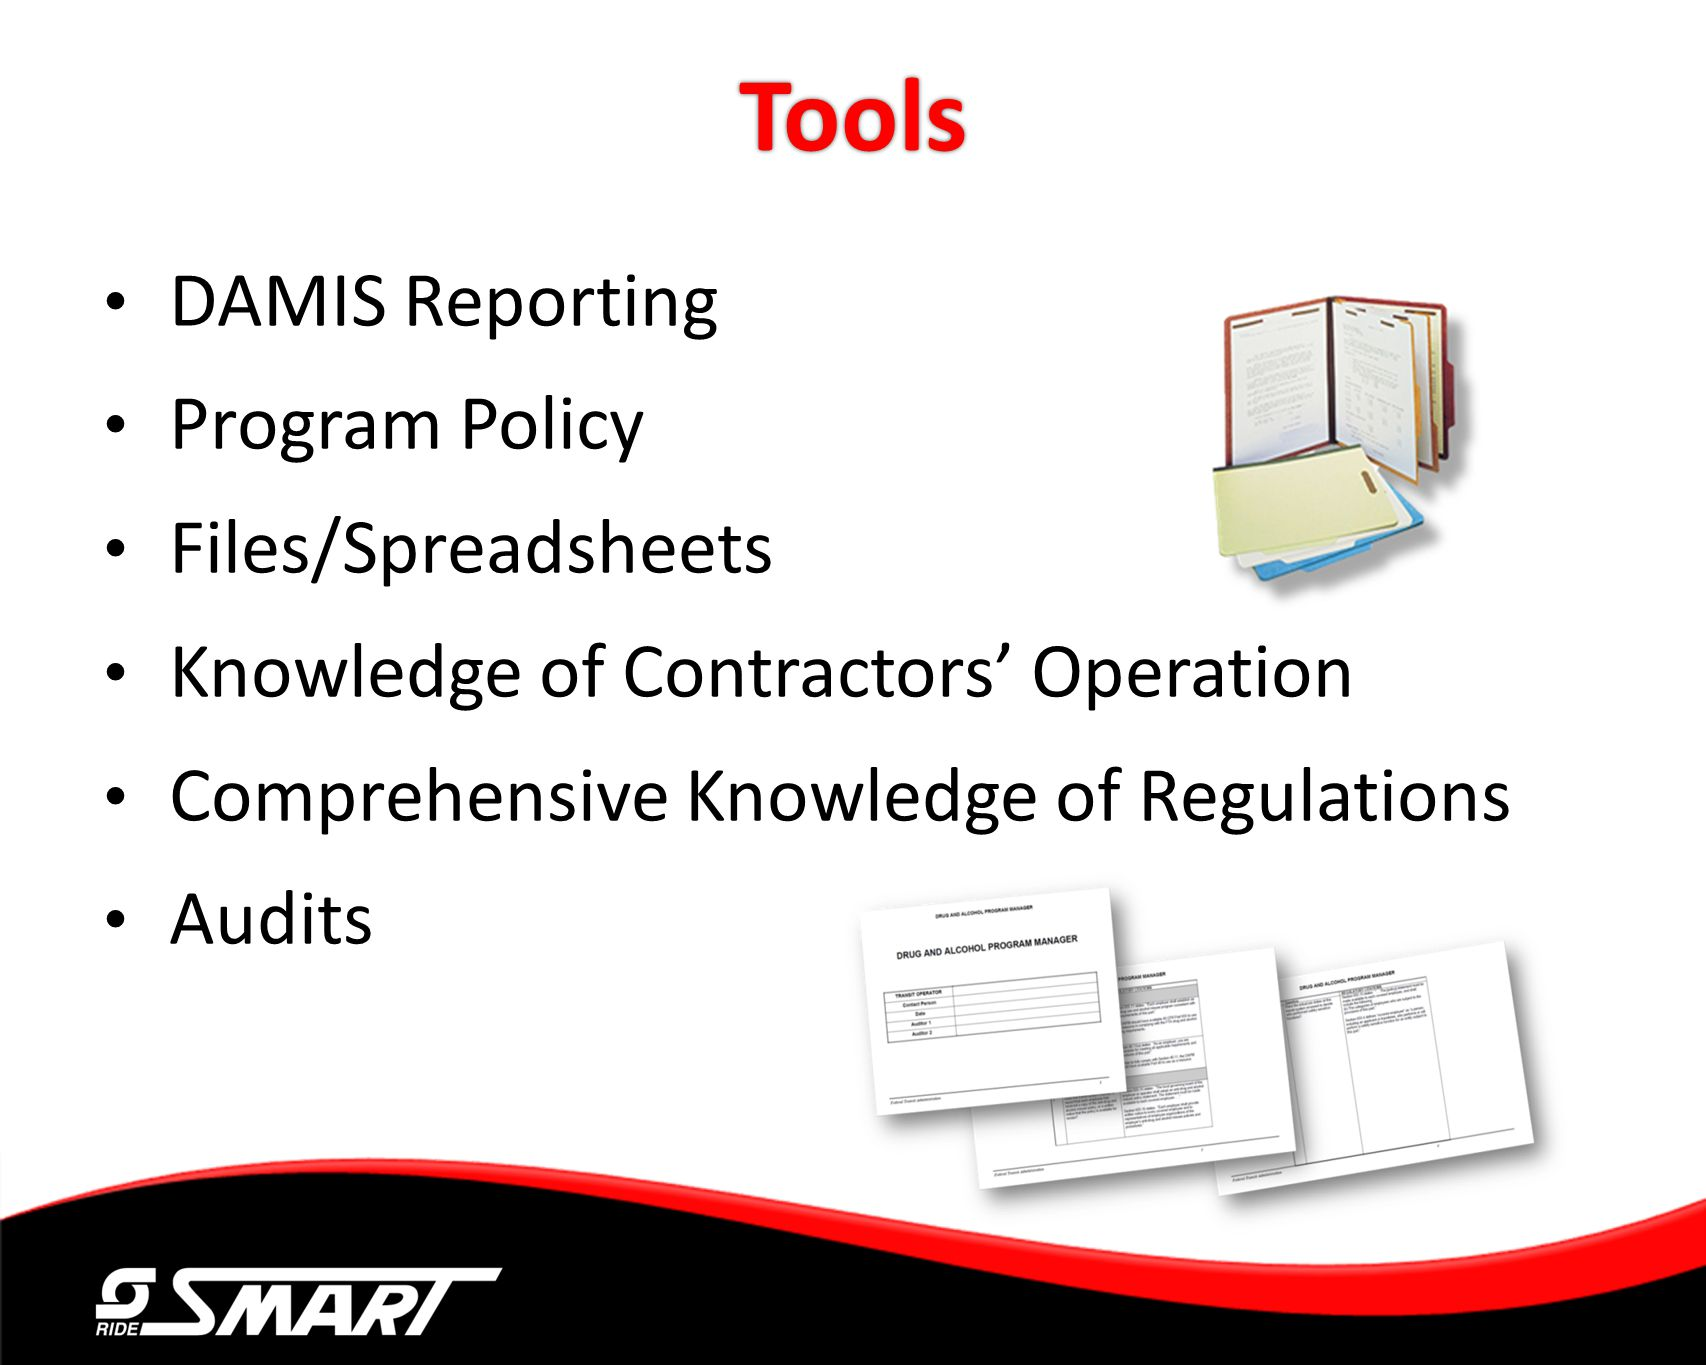 Tools DAMIS Reporting Program Policy Files/Spreadsheets Knowledge of Contractors Operation Comprehensive Knowledge of Regulations Audits